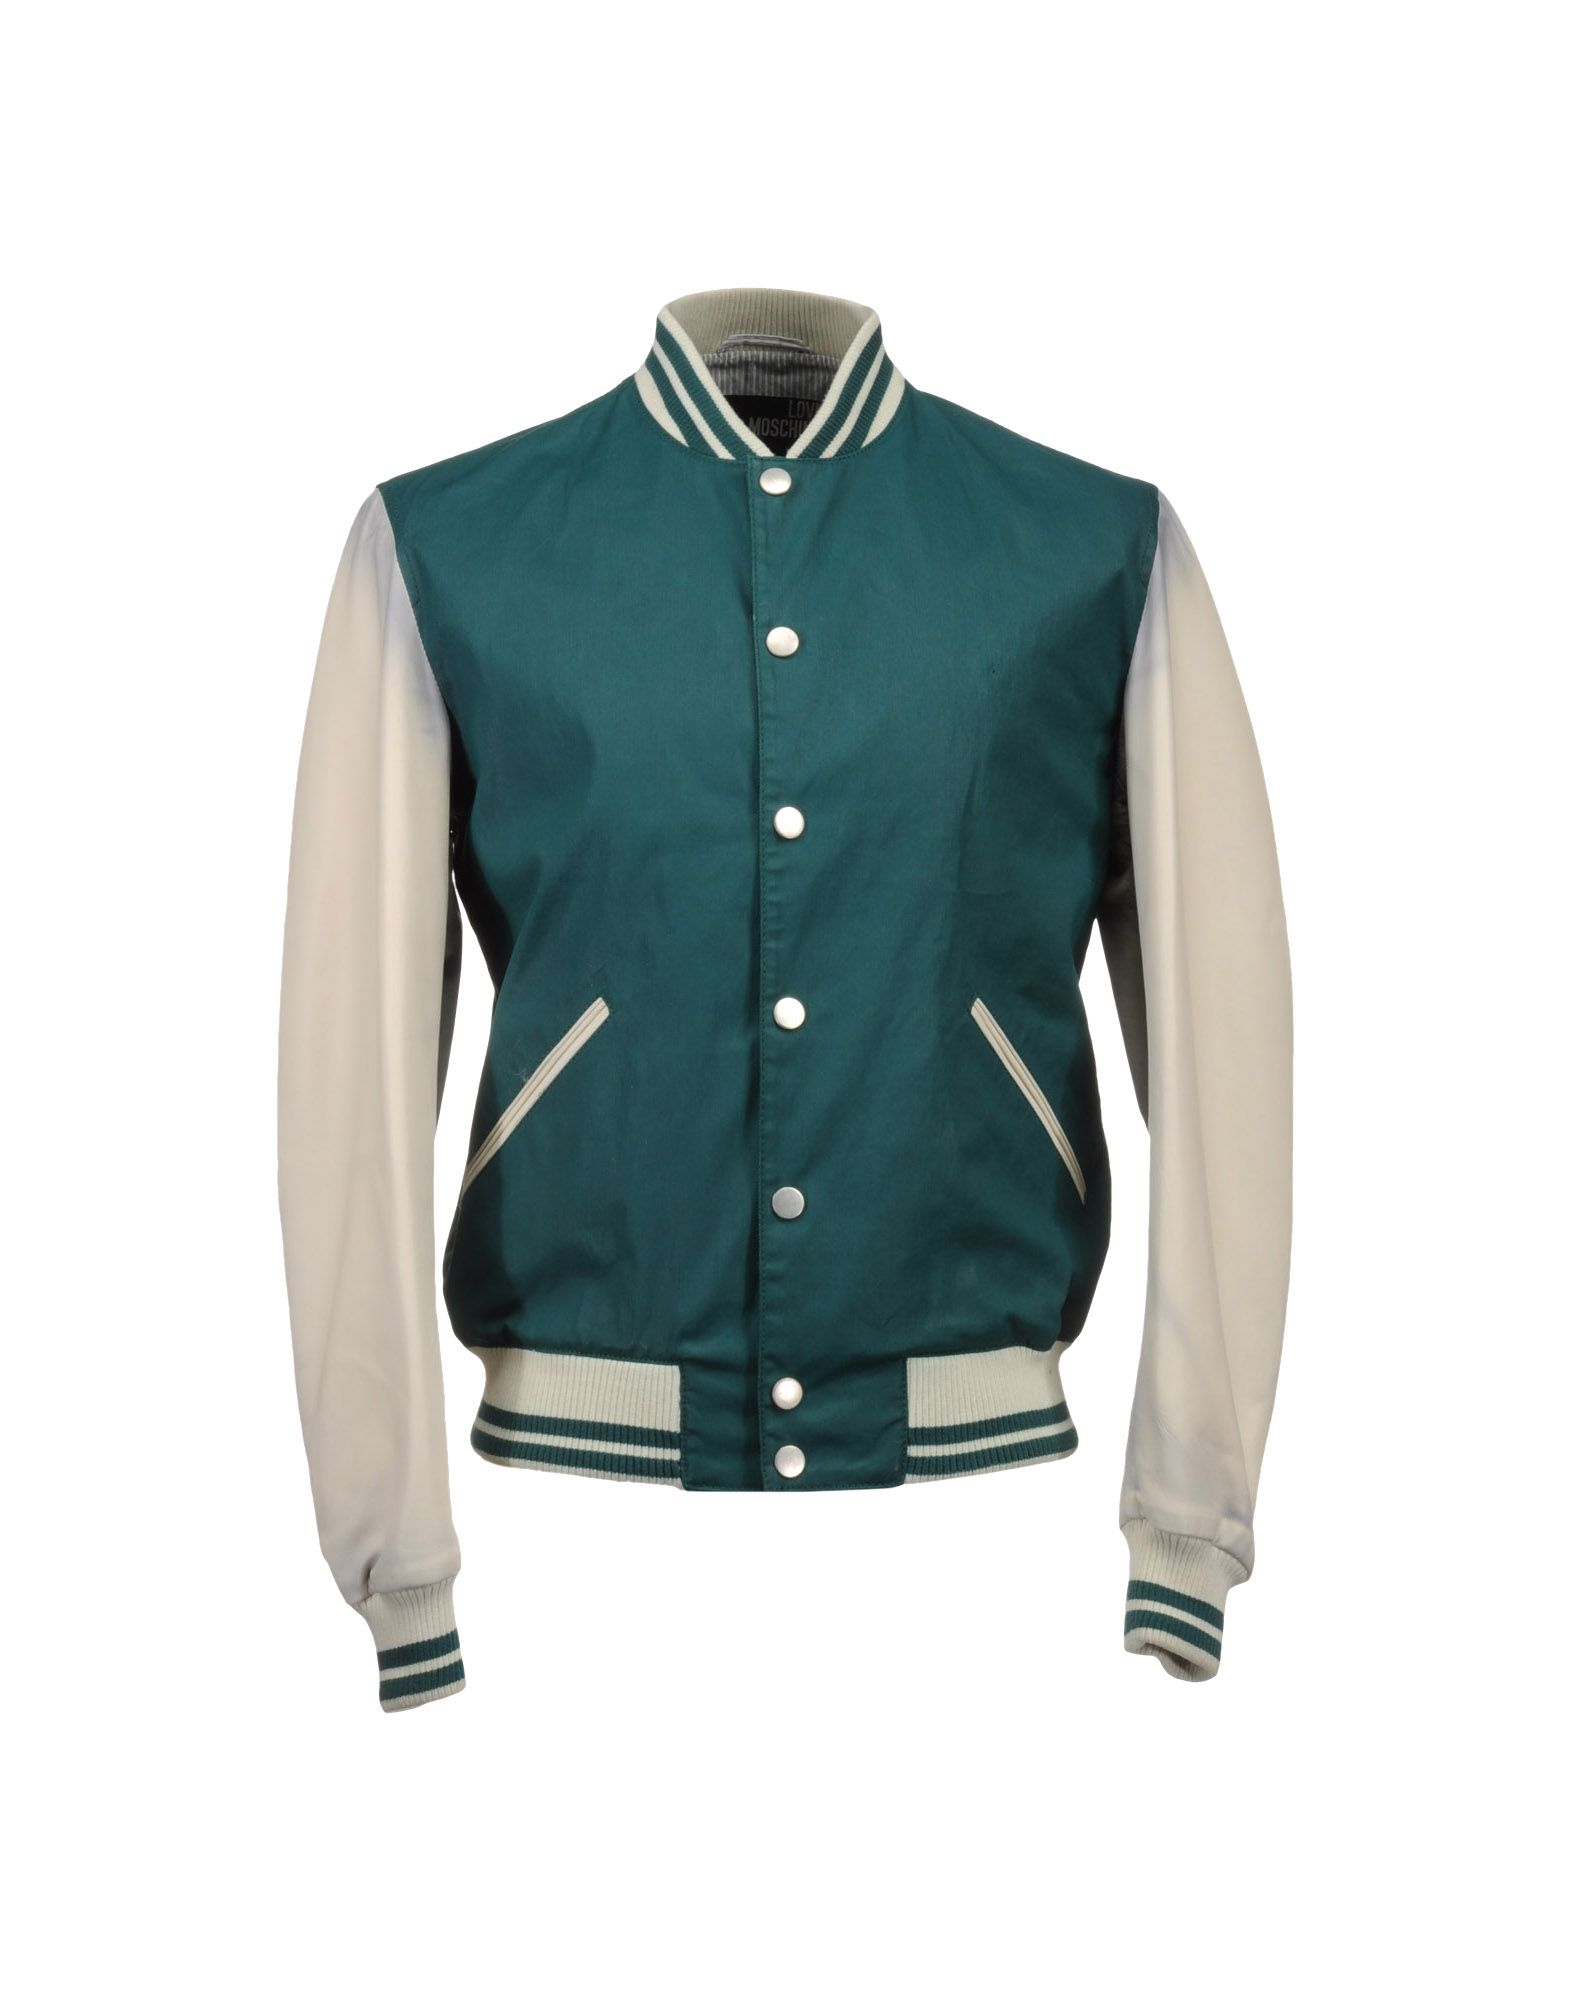 You searched for: jock jacket! Etsy is the home to thousands of handmade, vintage, and one-of-a-kind products and gifts related to your search. No matter what you're looking for or where you are in the world, our global marketplace of sellers can help you find unique and affordable options. Let's get started!